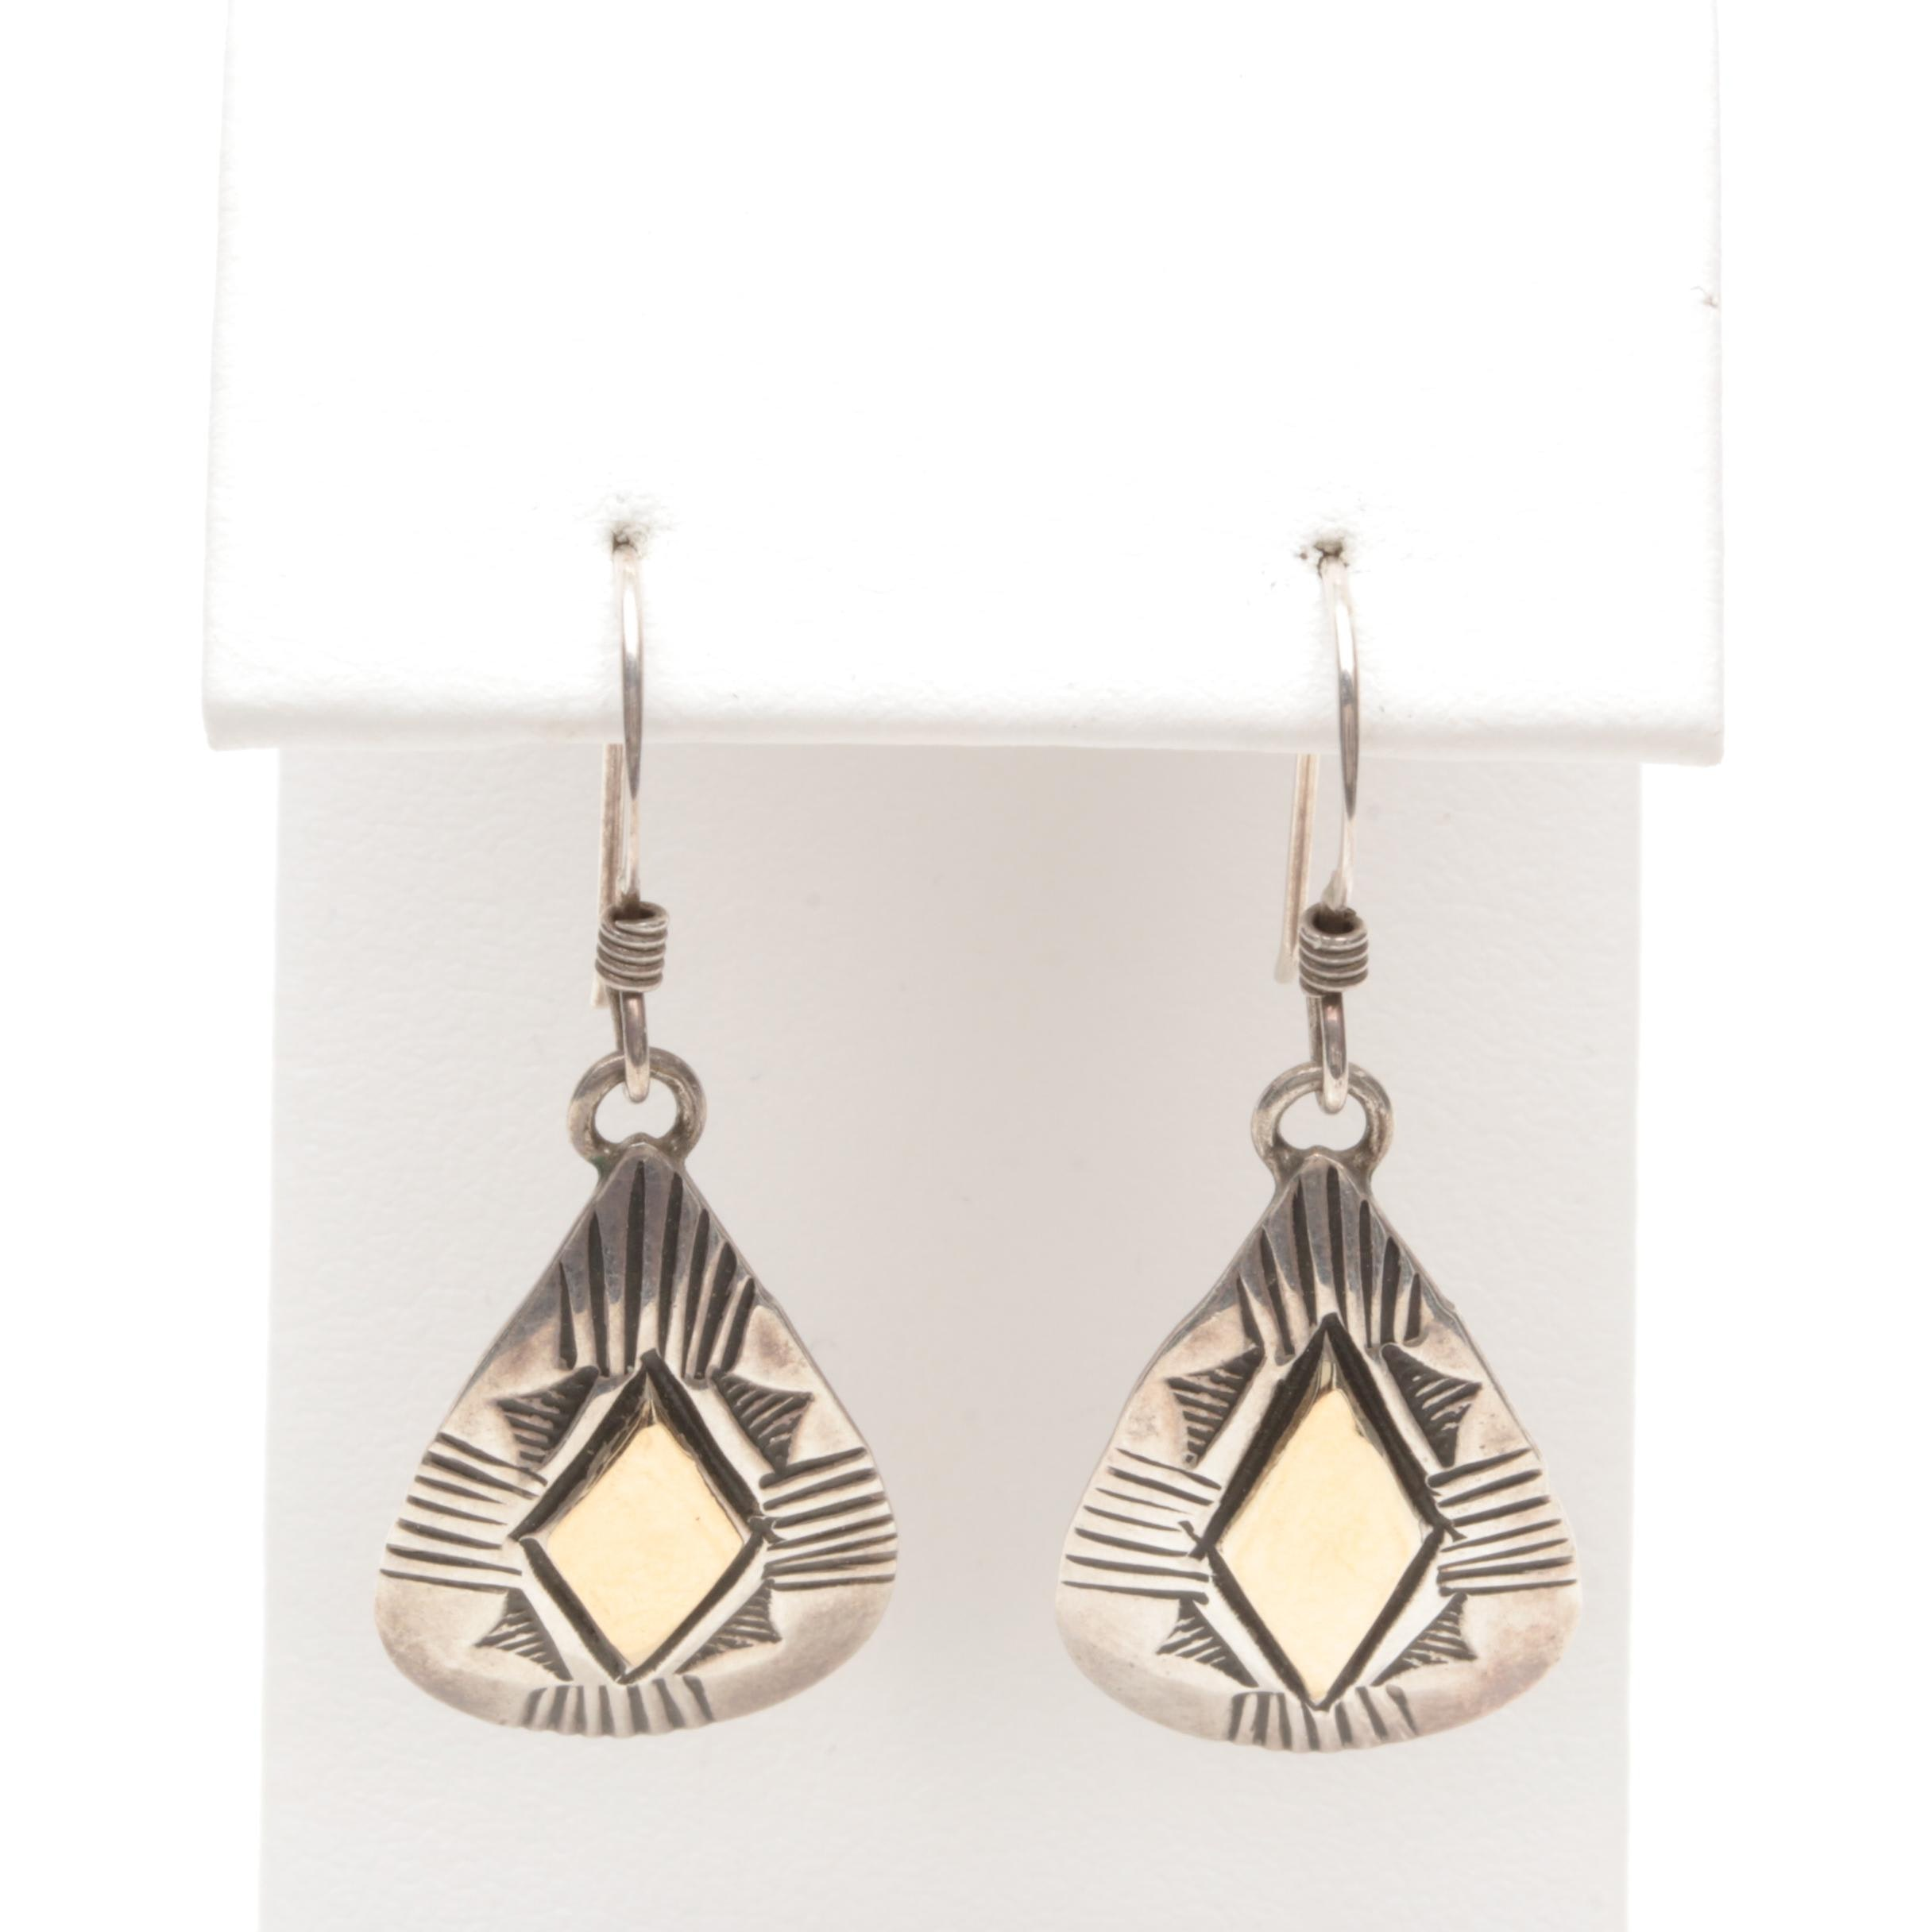 Ray Tafoya Navajo Diné Sterling Silver Earrings with 14K Yellow Gold Accents